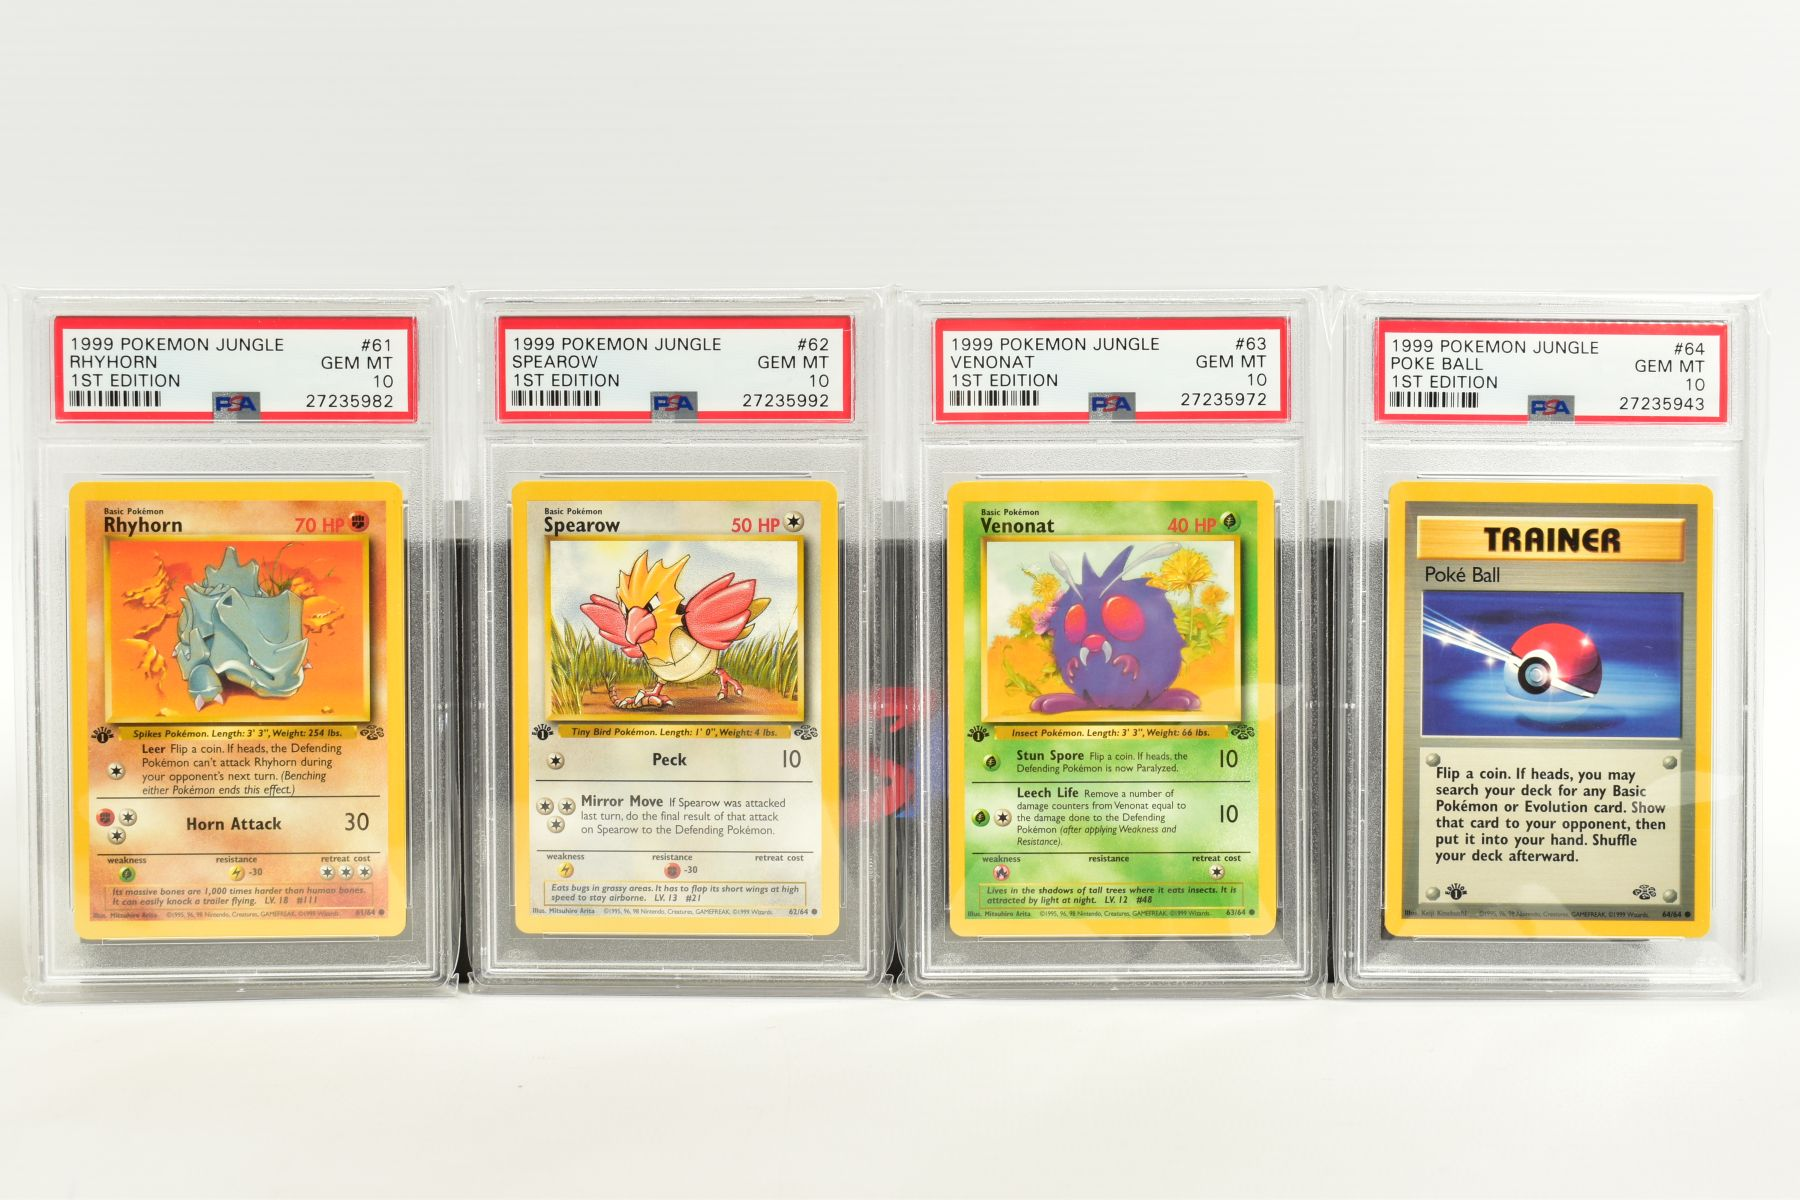 A QUANTITY OF PSA GRADED POKEMON 1ST EDITION JUNGLE SET CARDS, all are graded GEM MINT 10 and are - Image 13 of 13